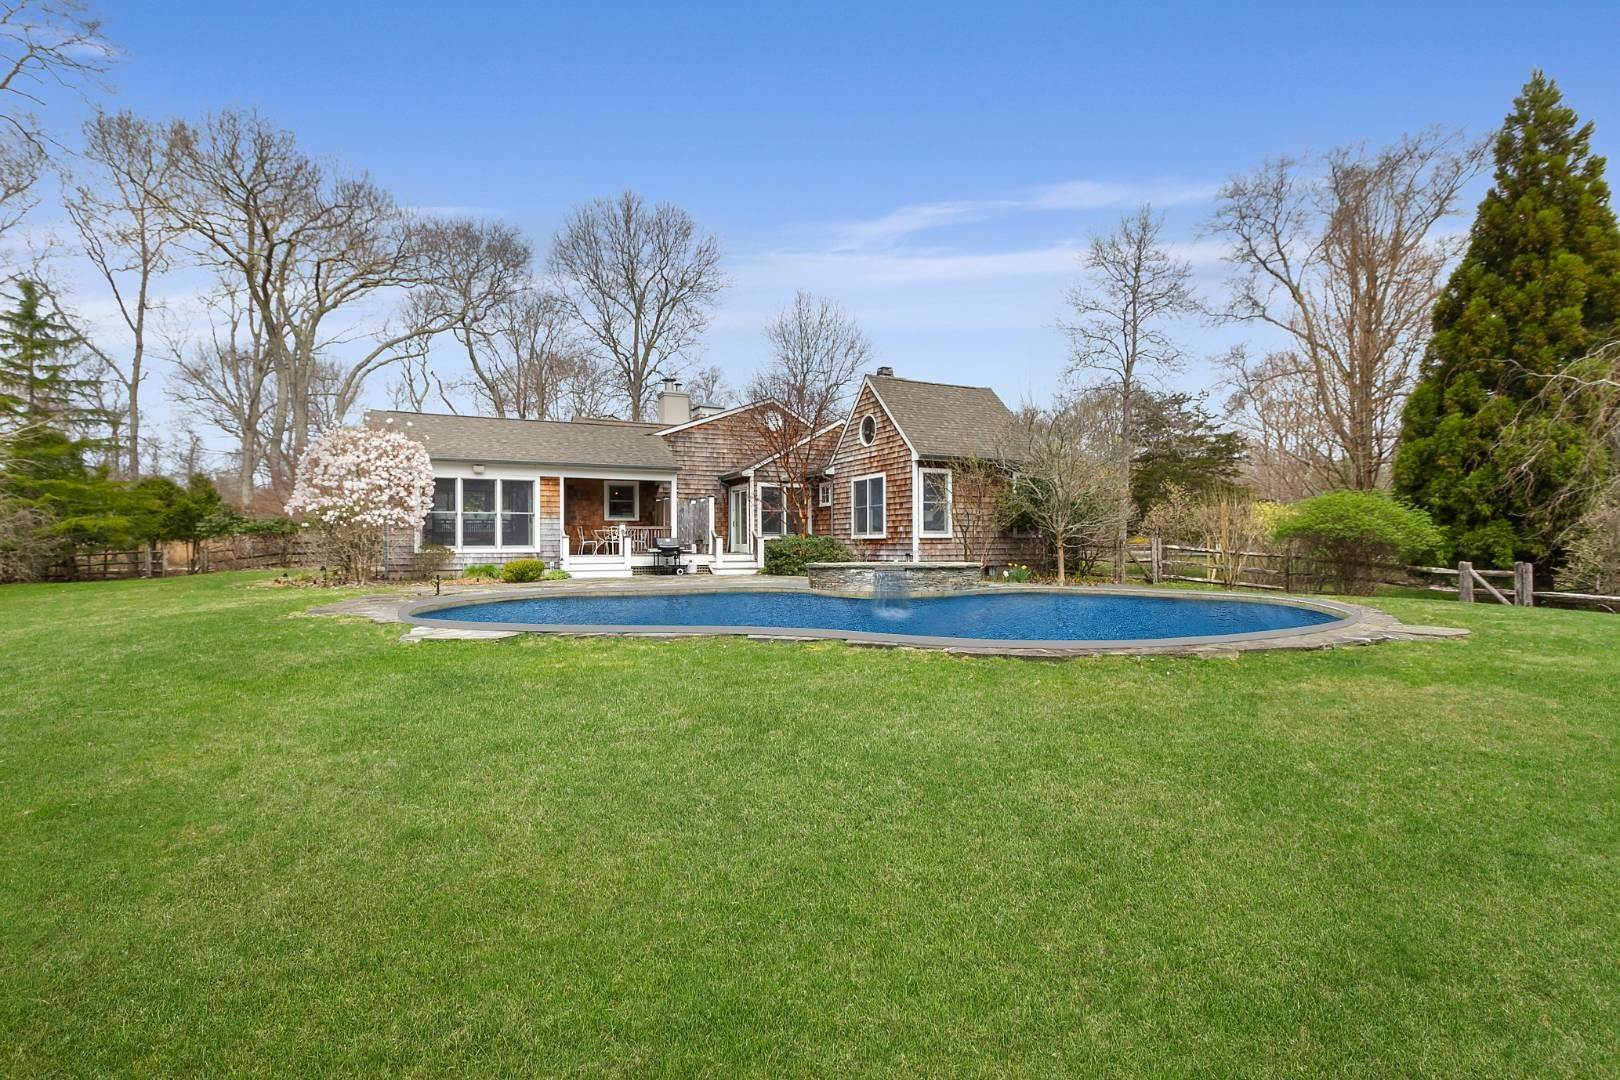 Single Family Home for Sale at Historic Springs Two-House Compound 104 Old Stone Hwy, East Hampton, NY 11937